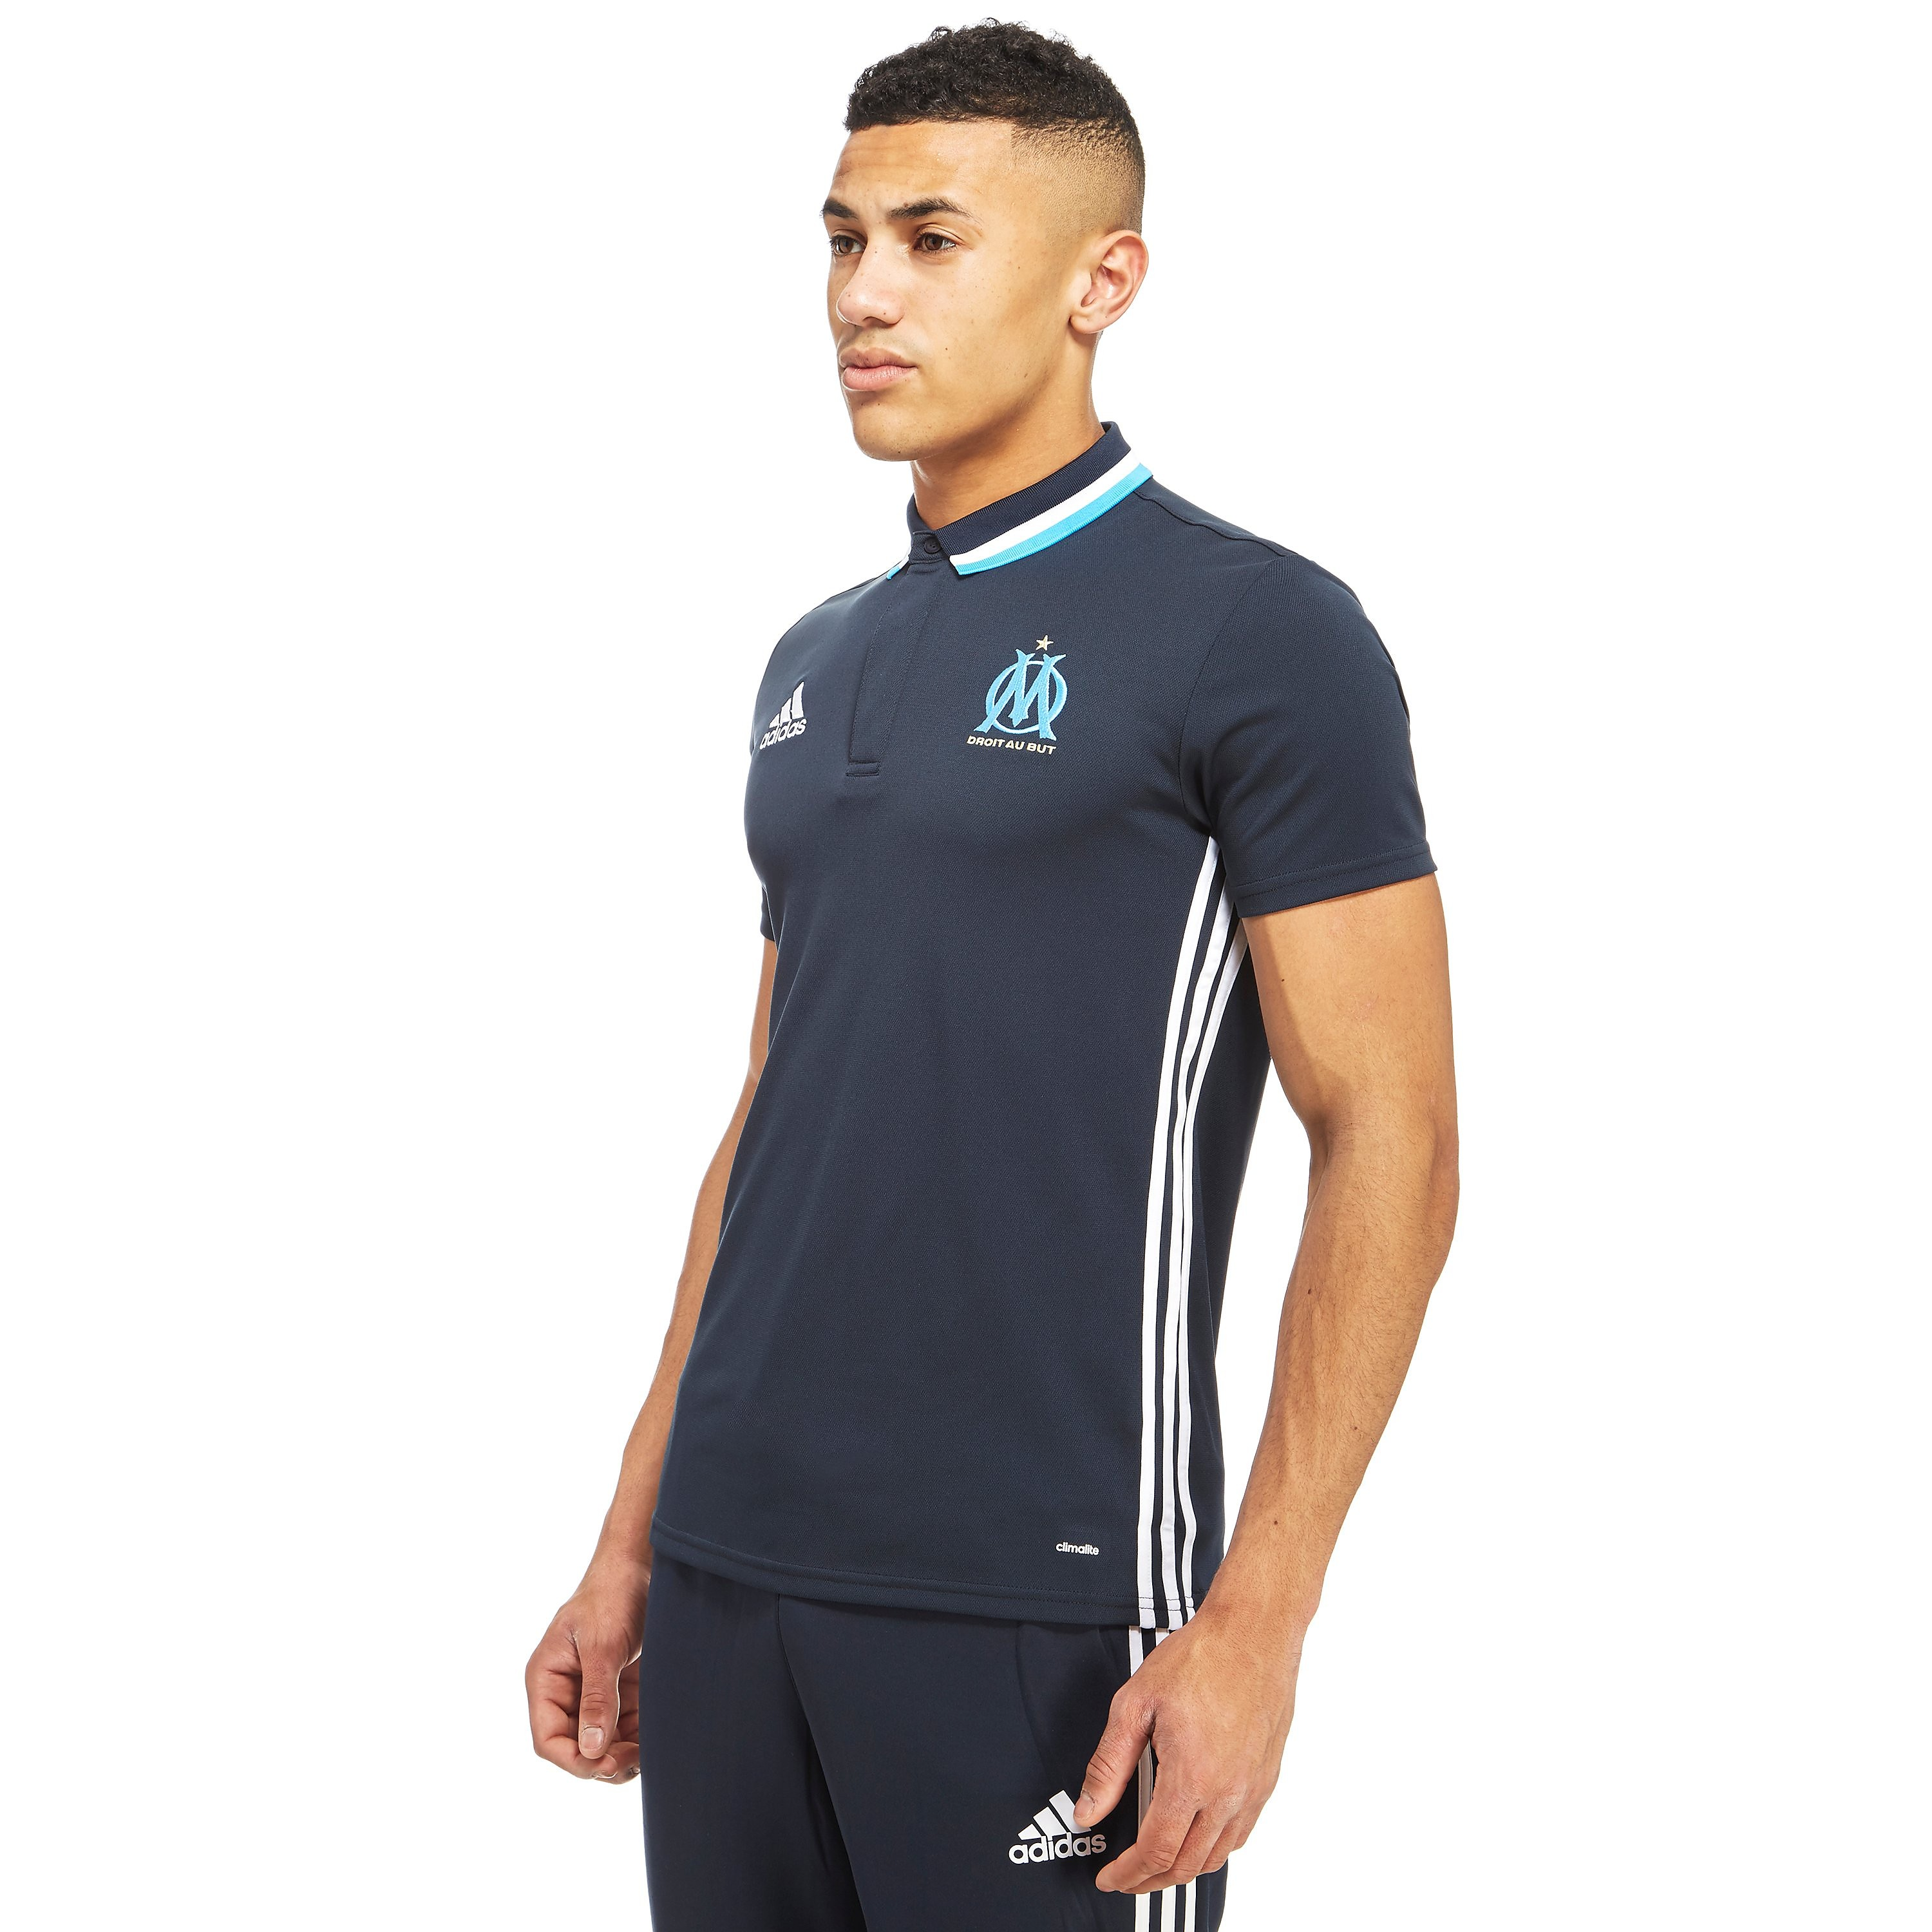 adidas Olympique Marseille 2016/17 Polo Shirt